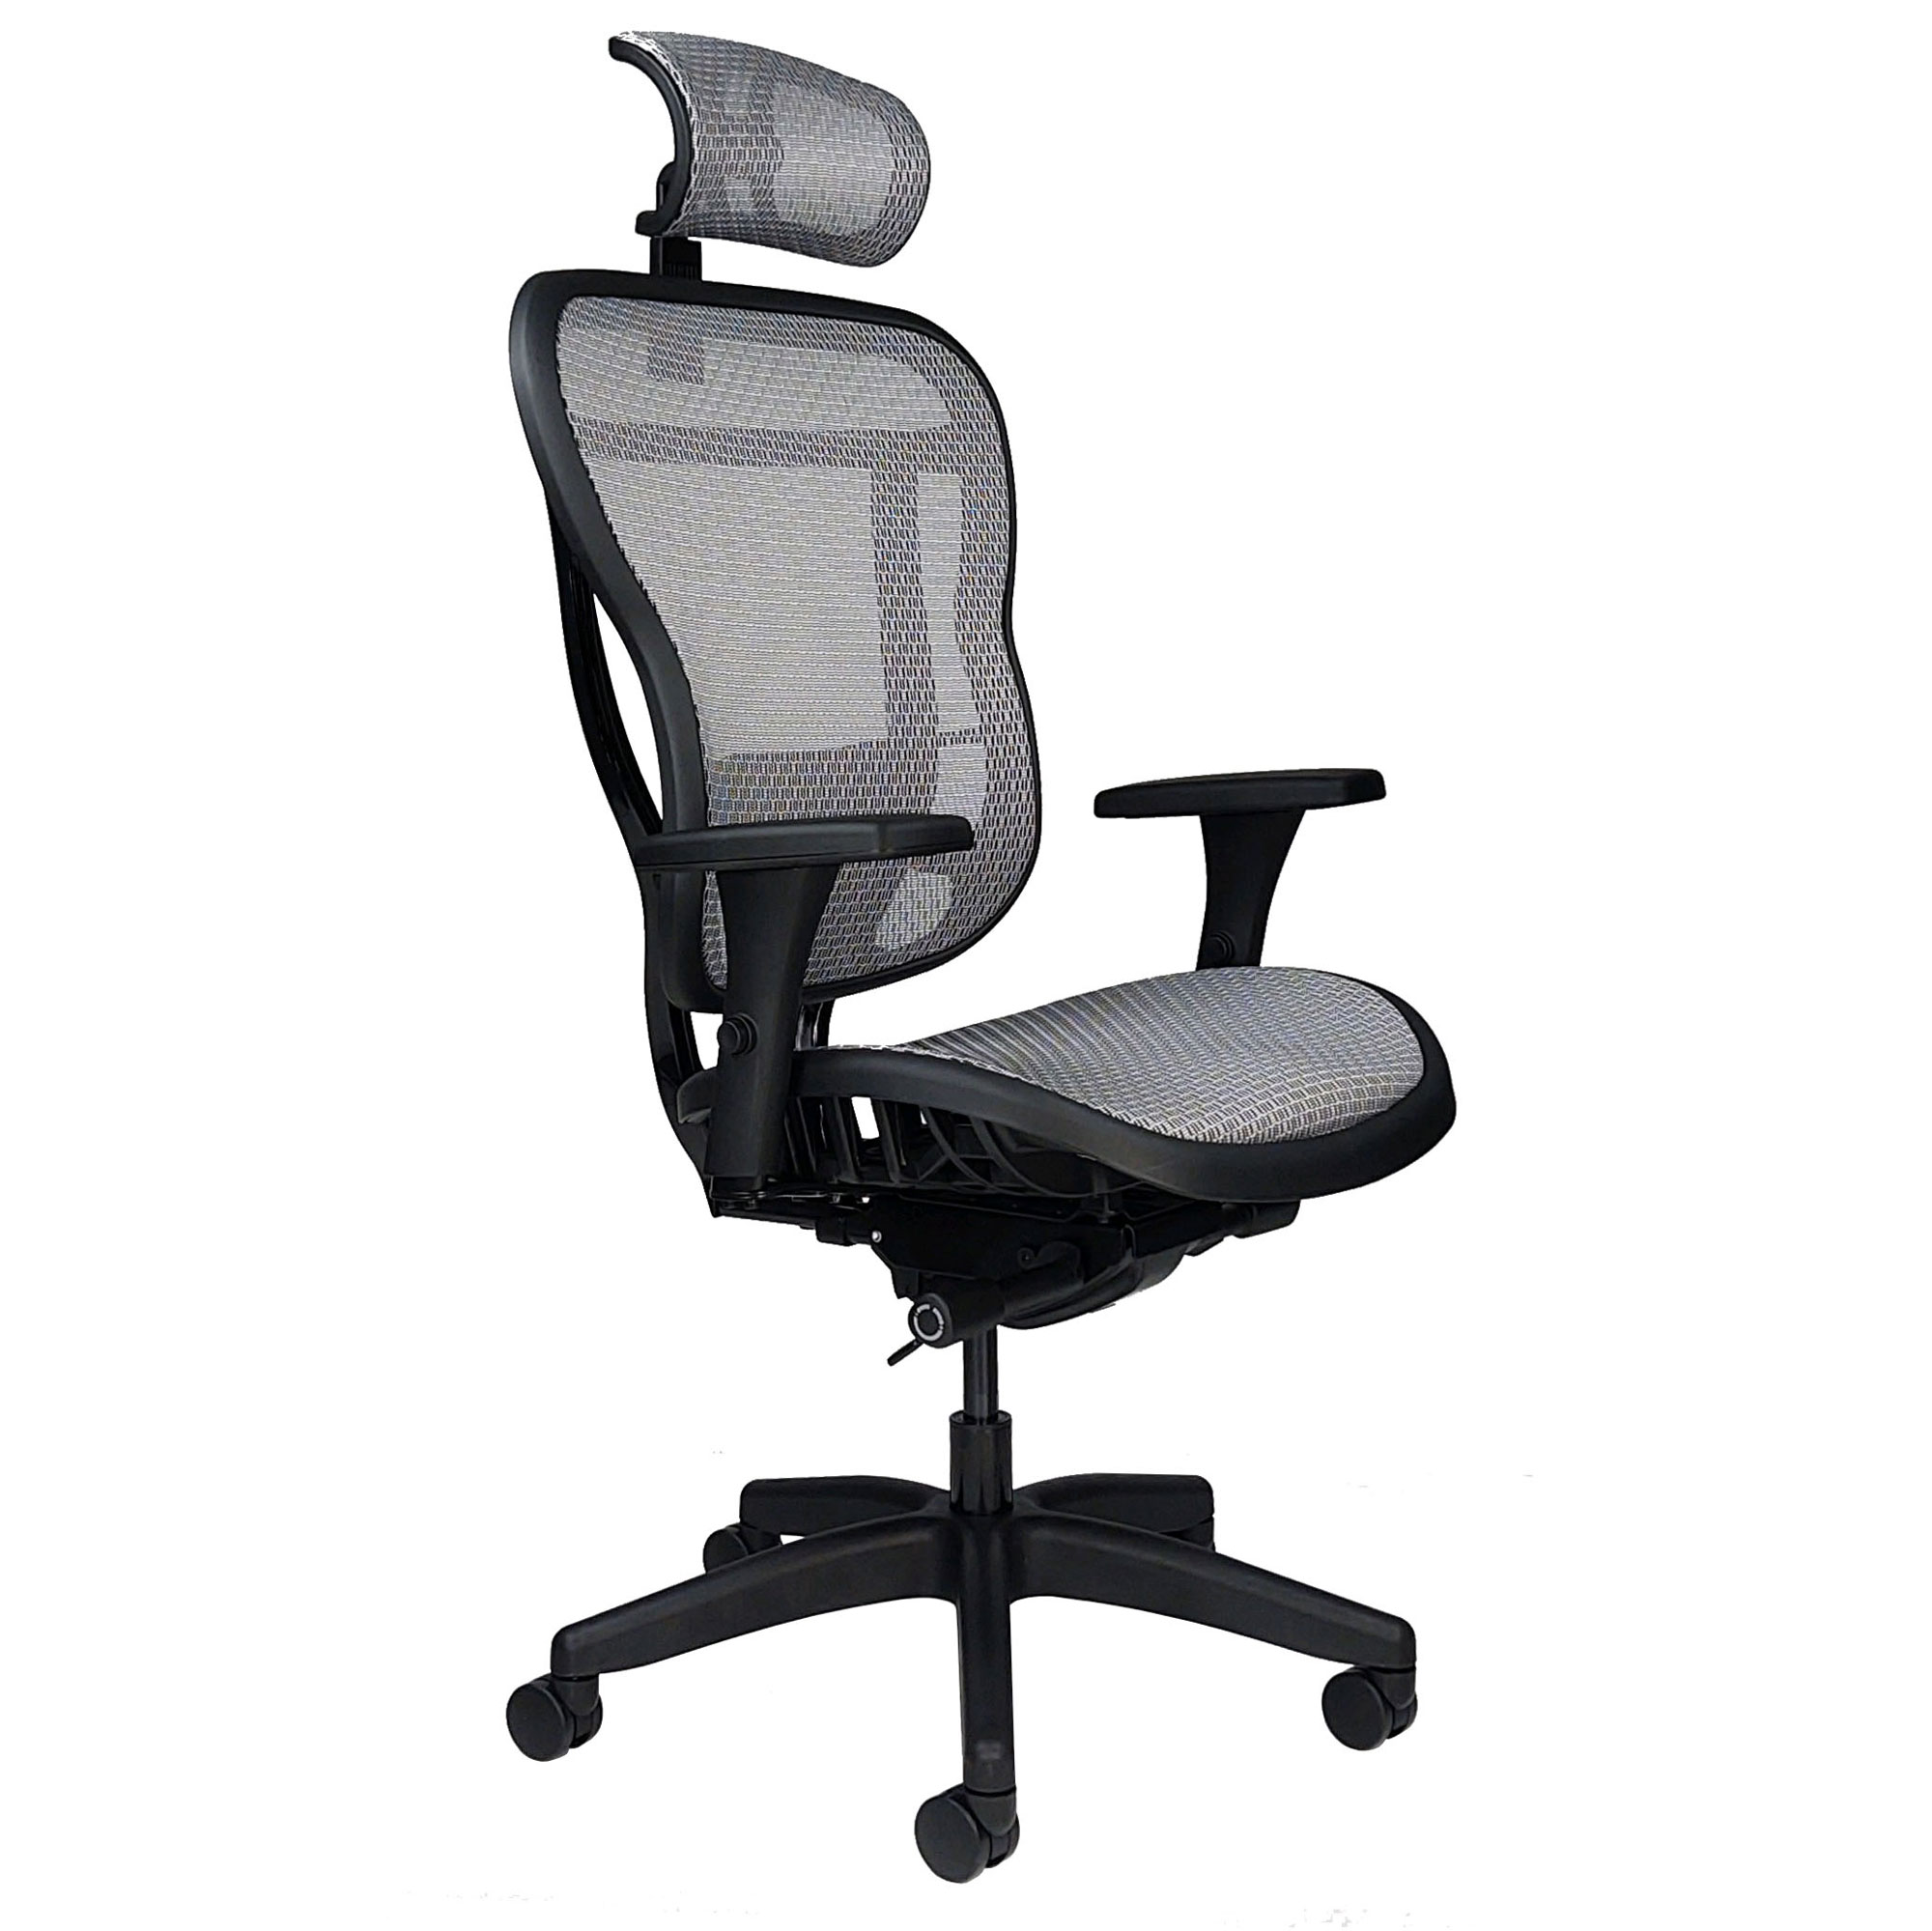 All-mesh ergonomic office chair with headrest, arms and wheels - front angle